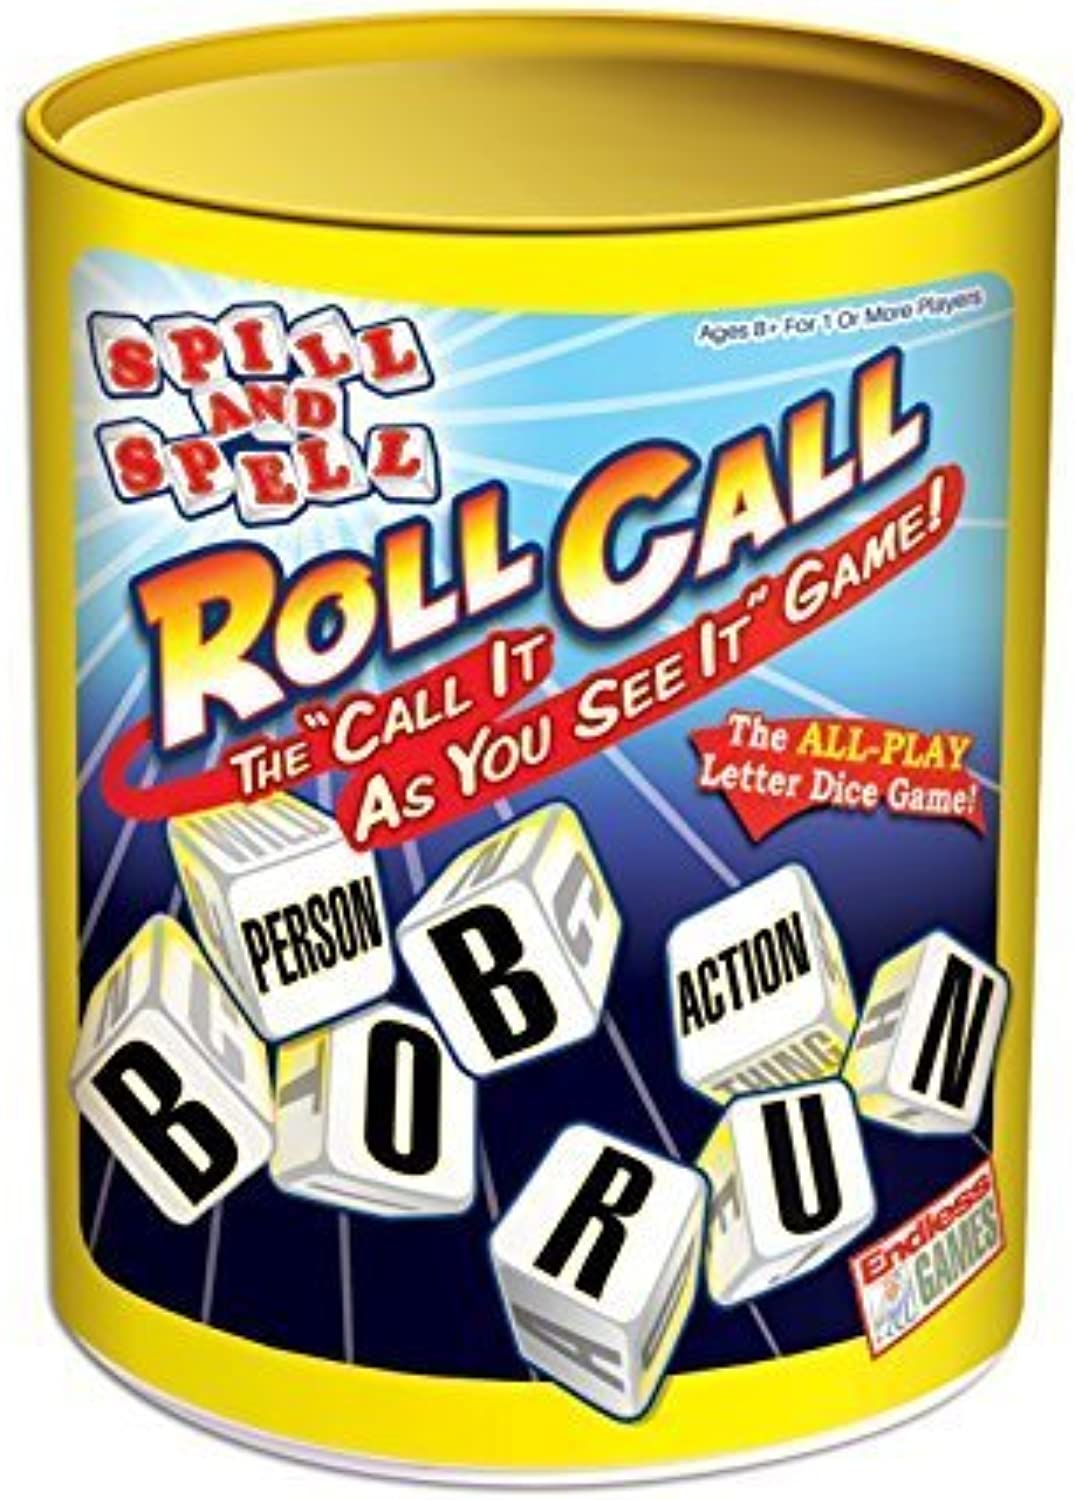 Spill and Spell Roll Call Board Game by Endless Games